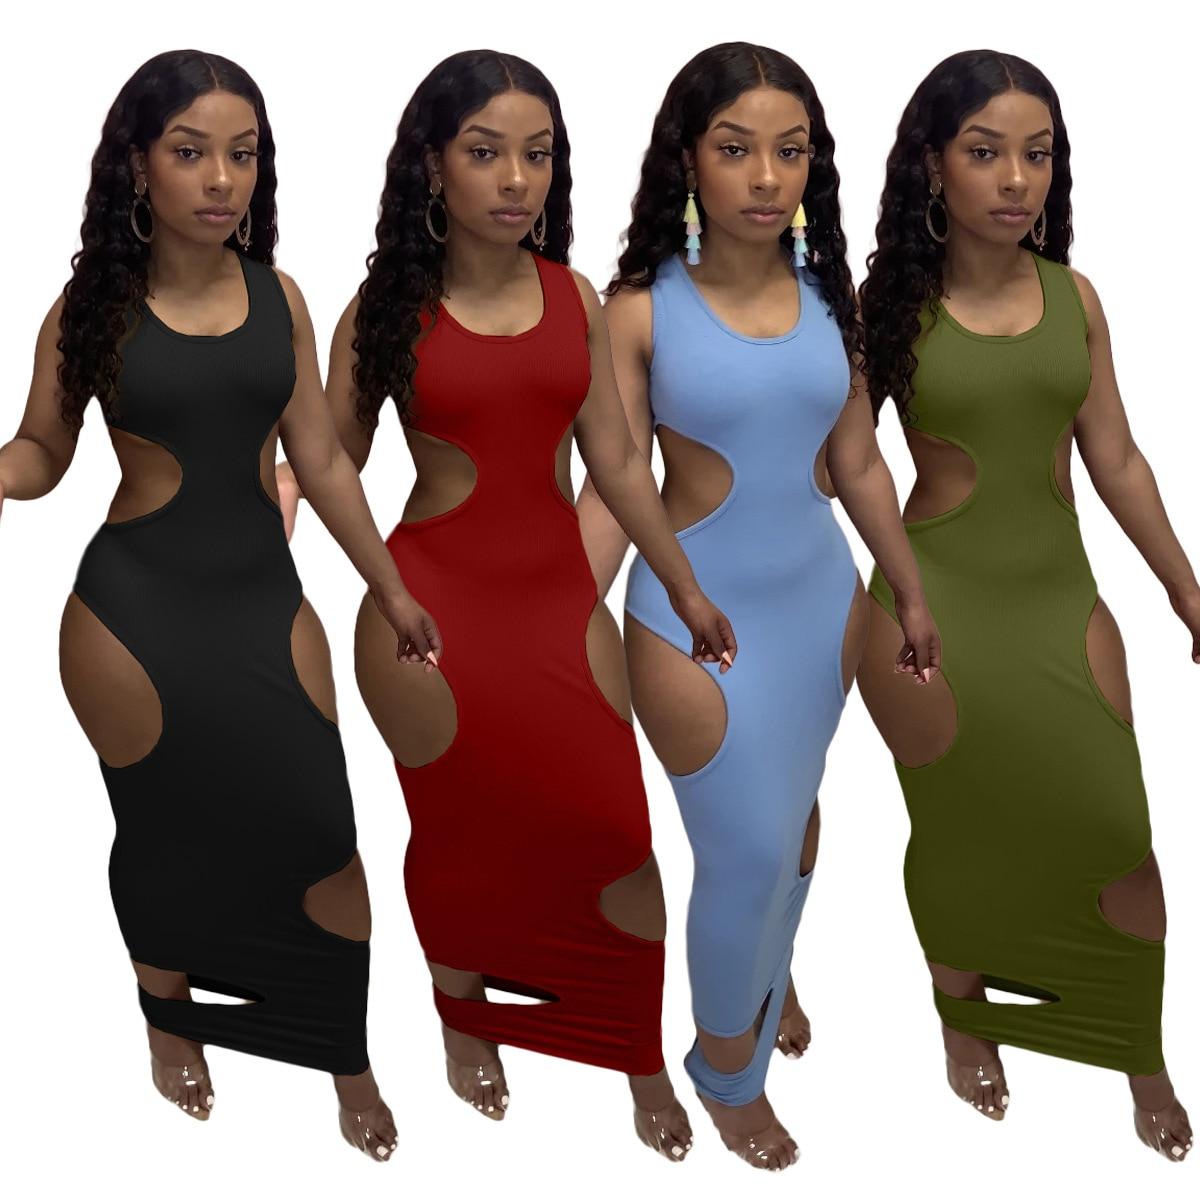 Sexy Women Dress Maxi Dresses Sleeveless Party Night Hollow Out Solid Color Summer Outfit Vestidos